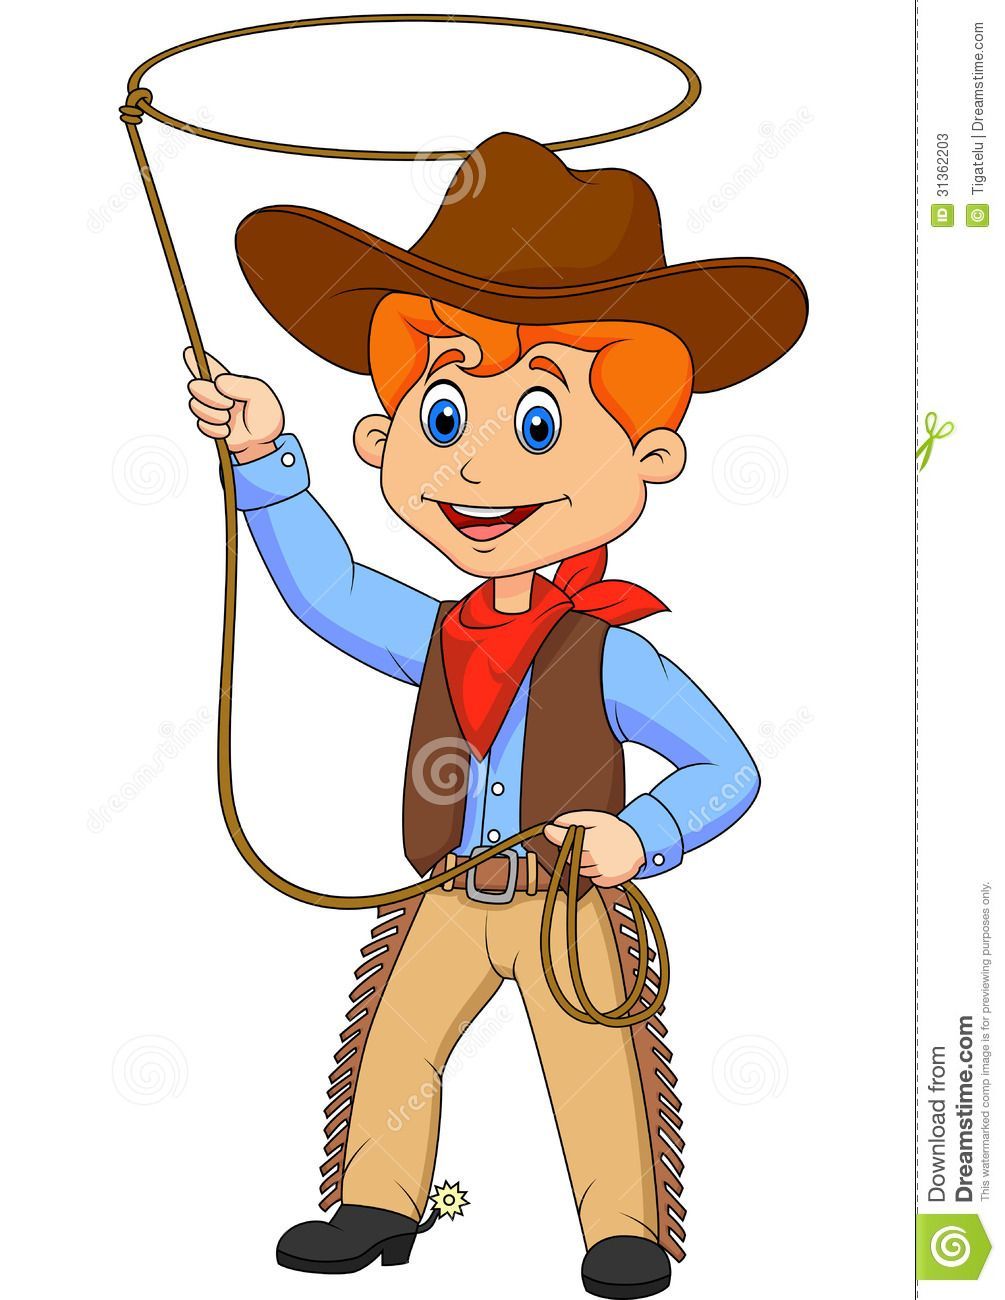 Pictures Of Cowboy Cartoon Yahoo Image Search Results